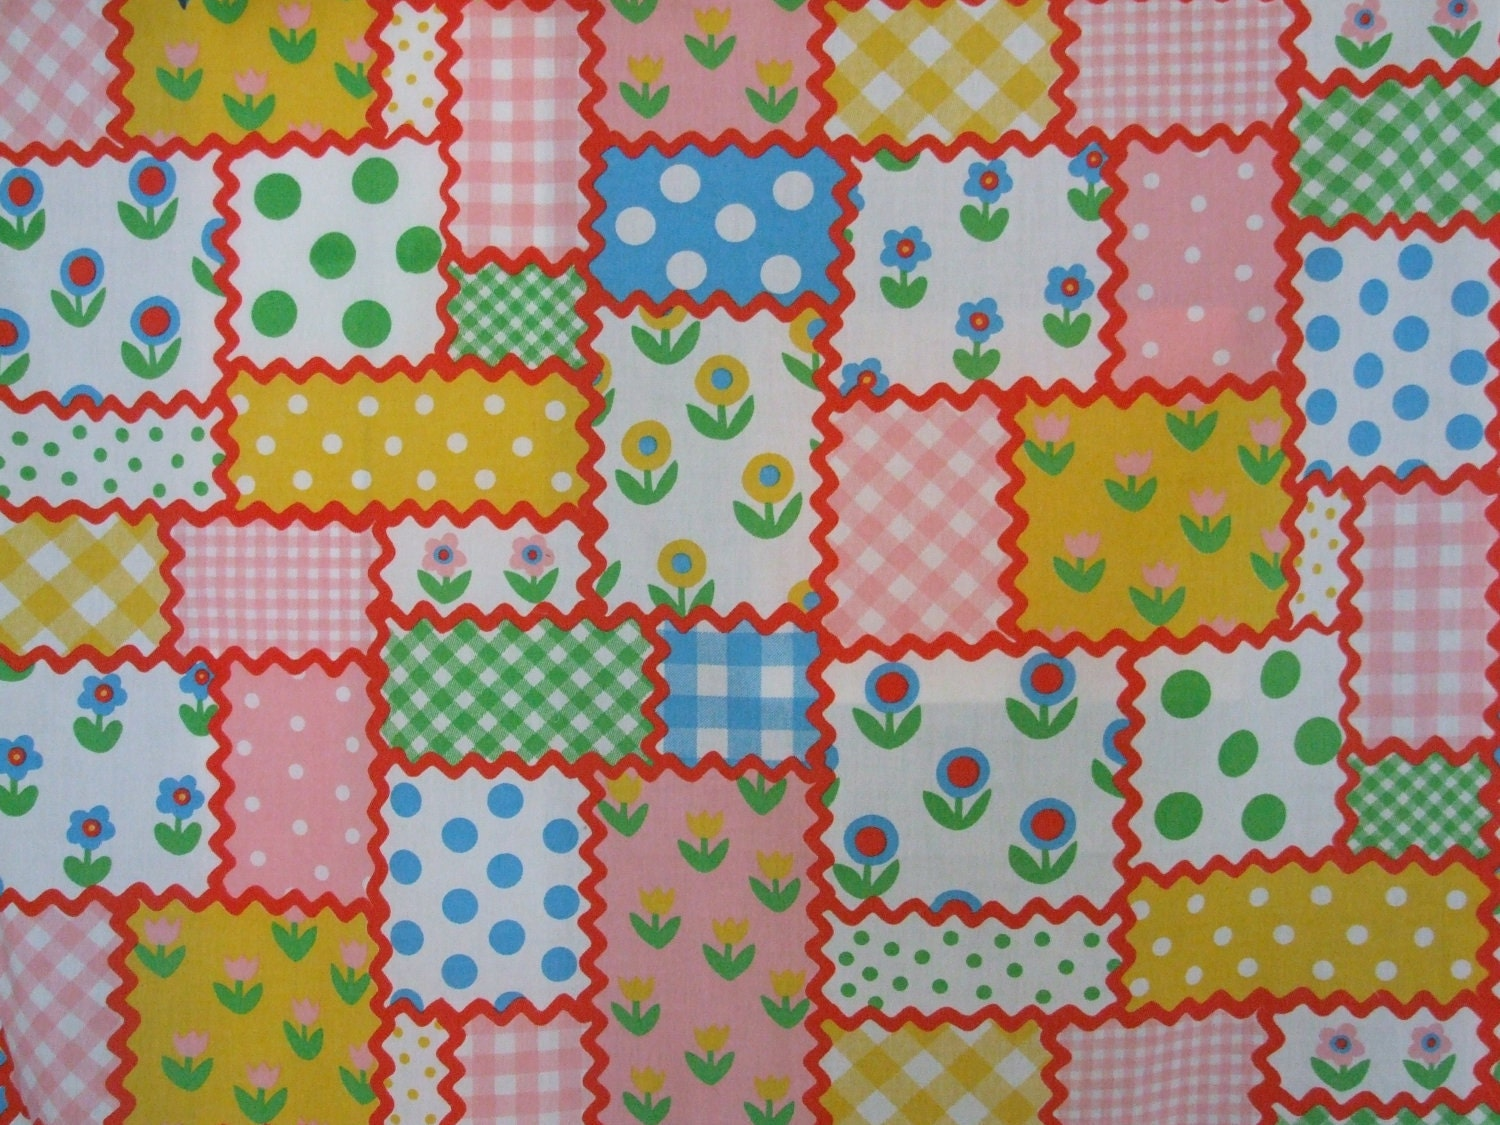 Vintage sheet (1 yard) - patchwork candy land